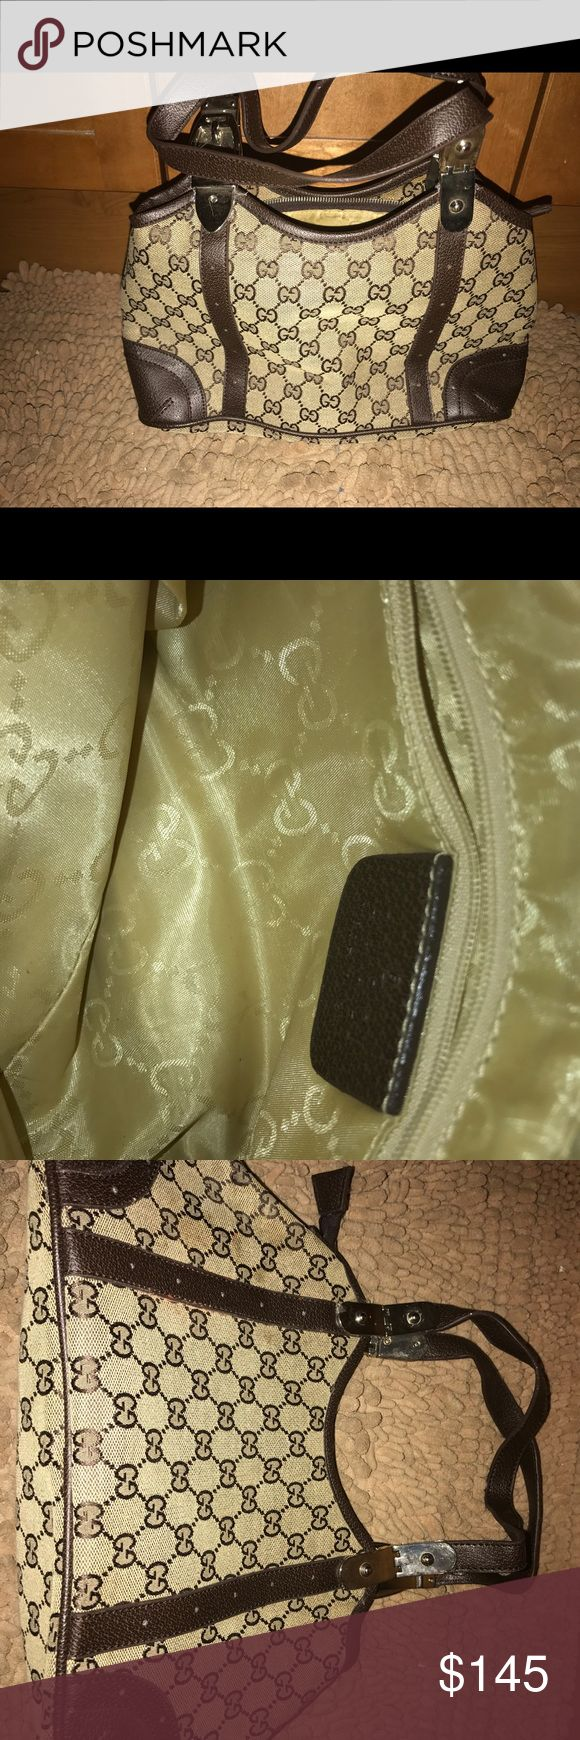 GUCCI Vintage Monogram Bag Vintage Monogram GUCCI Bag. Hardware with Silver color, inside has a small zipper pocket with Gucci tag. Inside is spotless, overall GREAT condition. Slightly used!! Gucci Bags Hobos